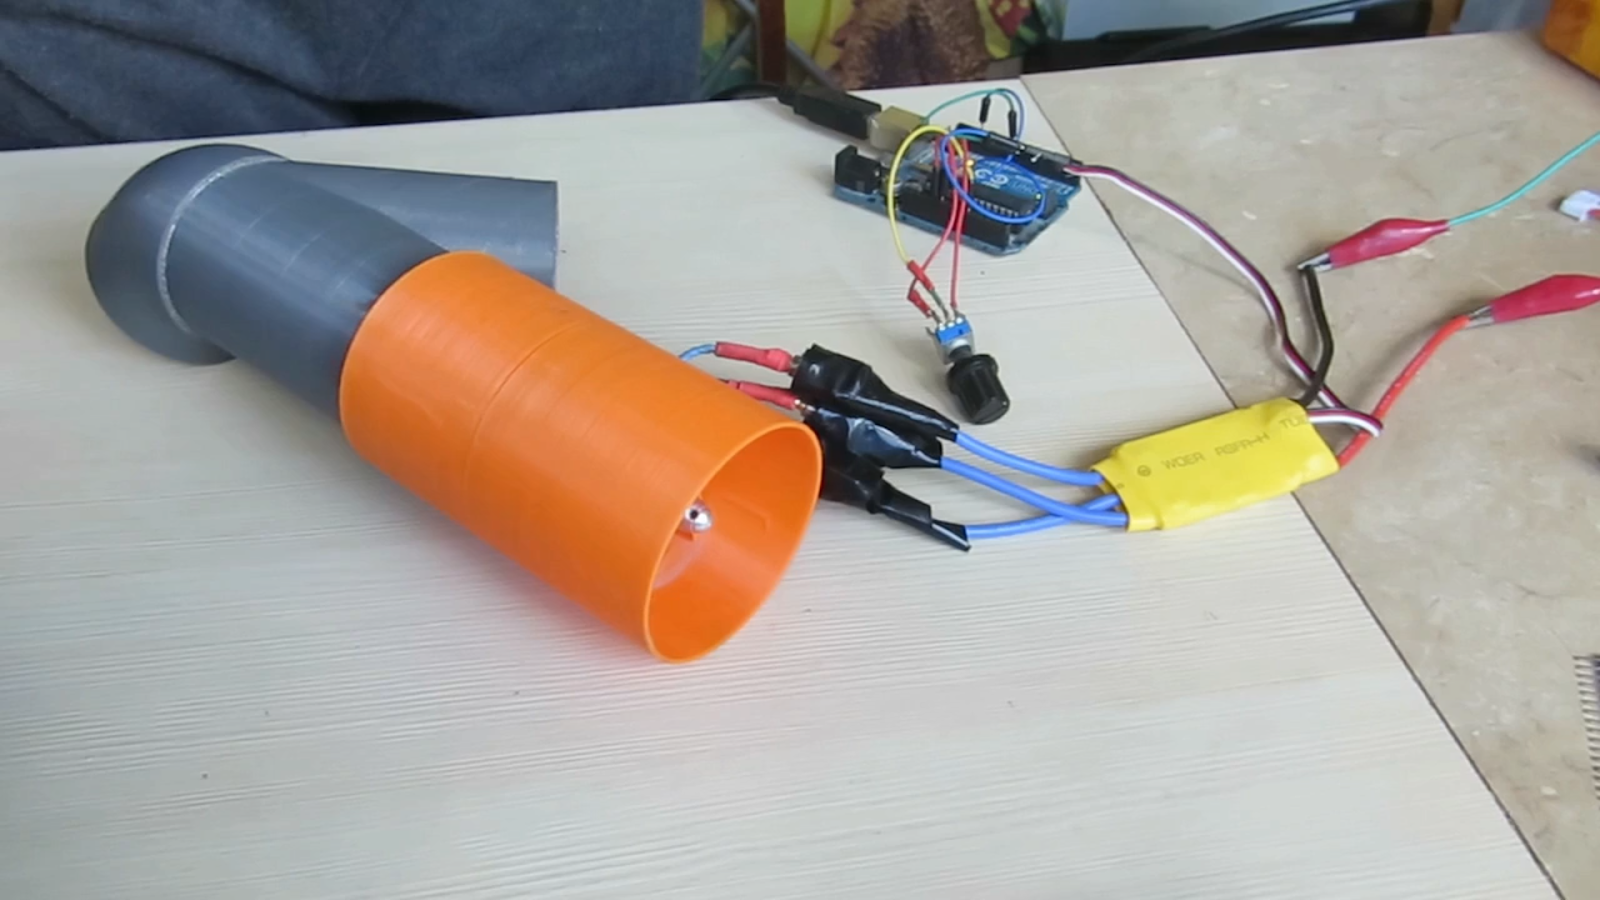 Driving Brushless Dc Motors With Arduino On The Cheap Using Escs For Motor Wiring Circuit Motorcontrol Controlcircuit Rc Vehicles